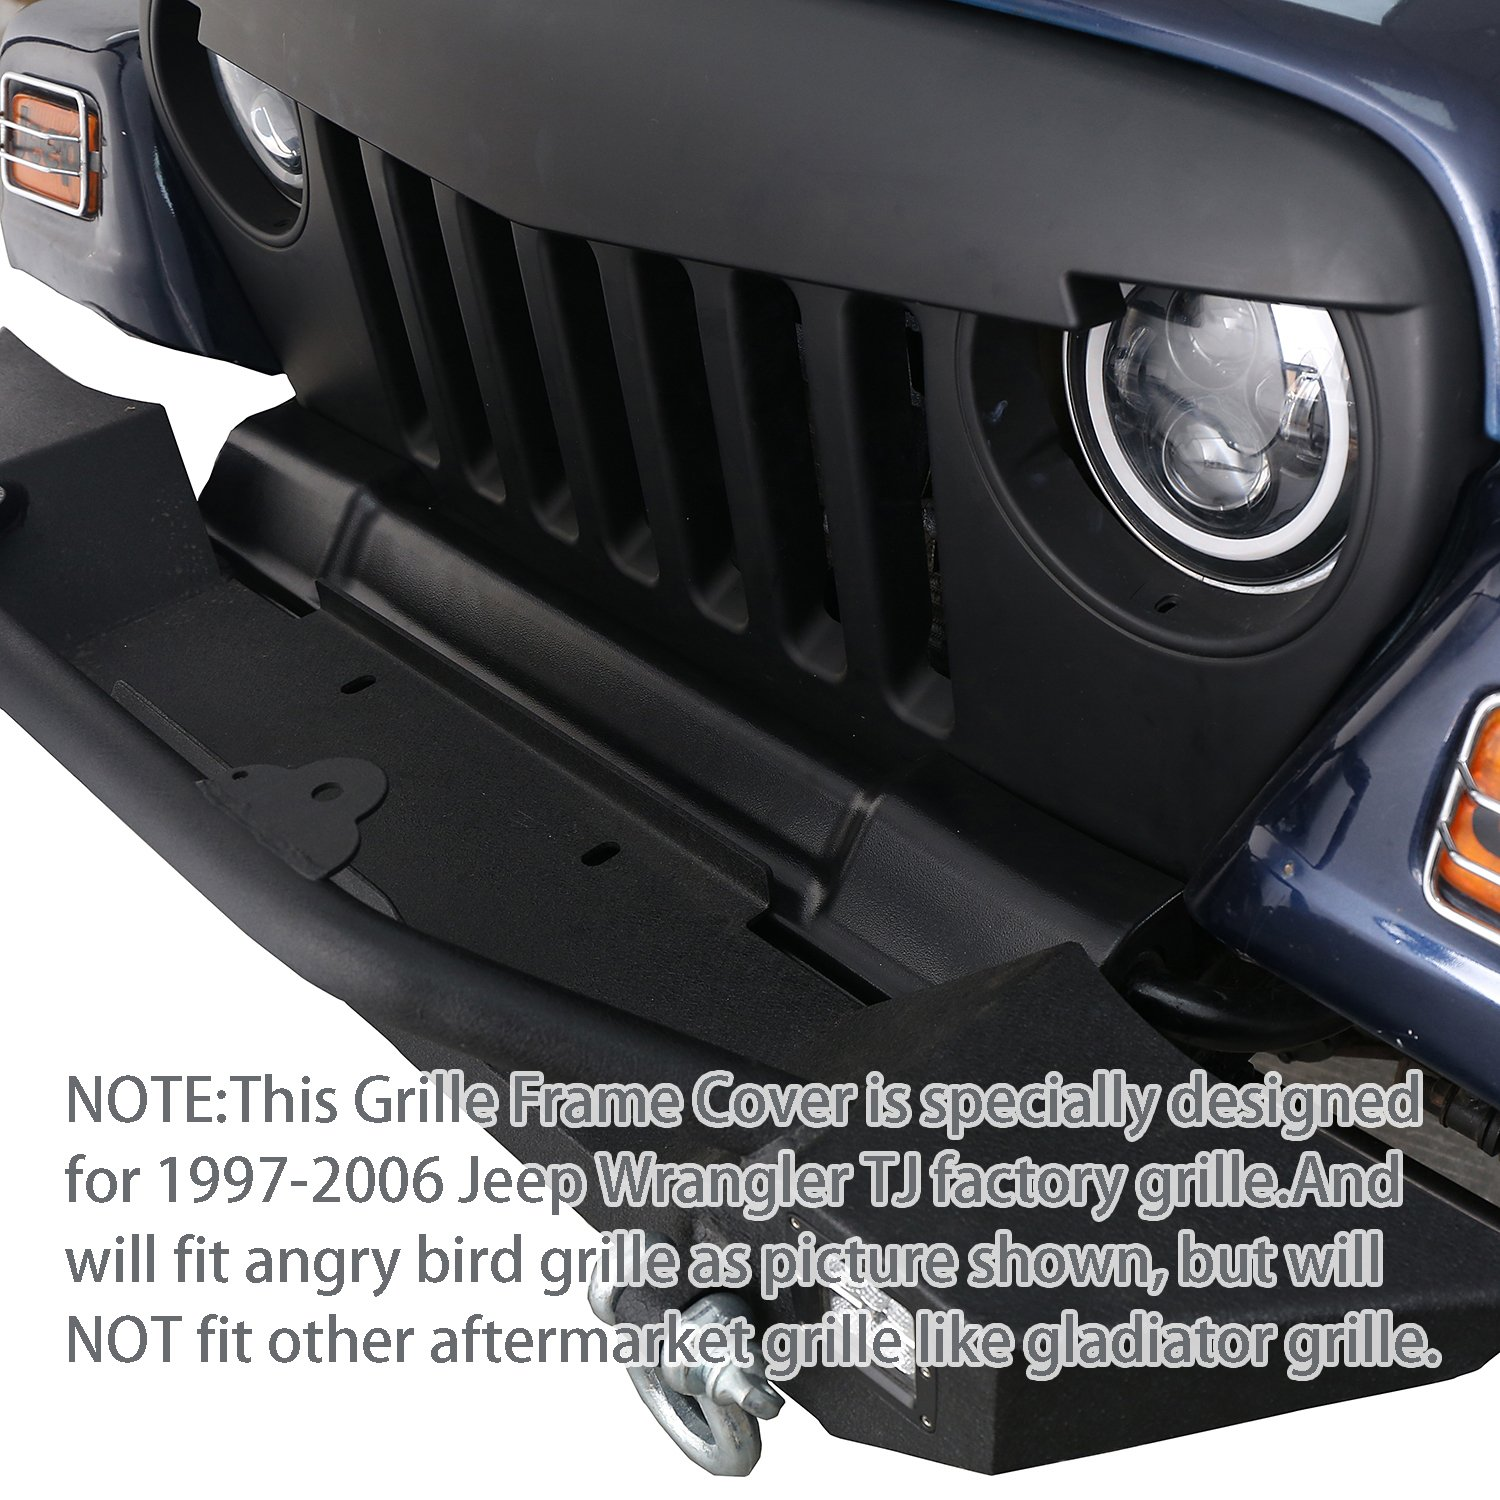 Hooke Road Abs Textured Black Front Grille Protects Jeep Wrangler Parts Frame Cover For 1997 2006 Tj Factory Grillewill Fit Angry Bird Shown